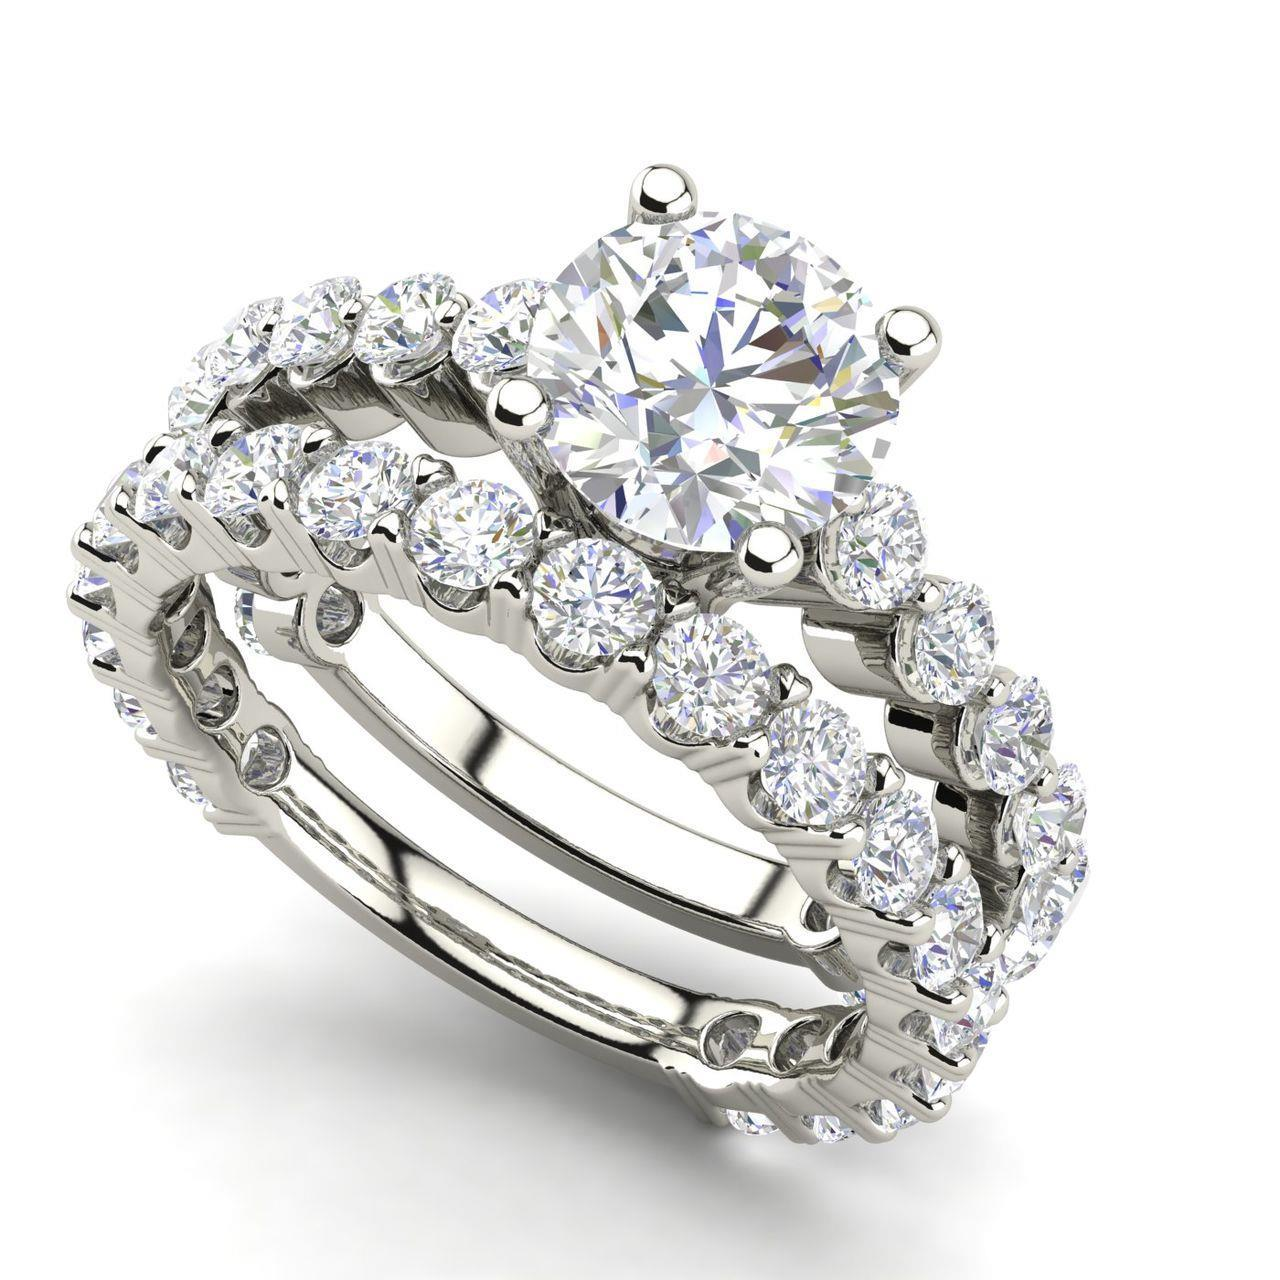 platinum jewellery engagement raine turgeon diamond ring rings product